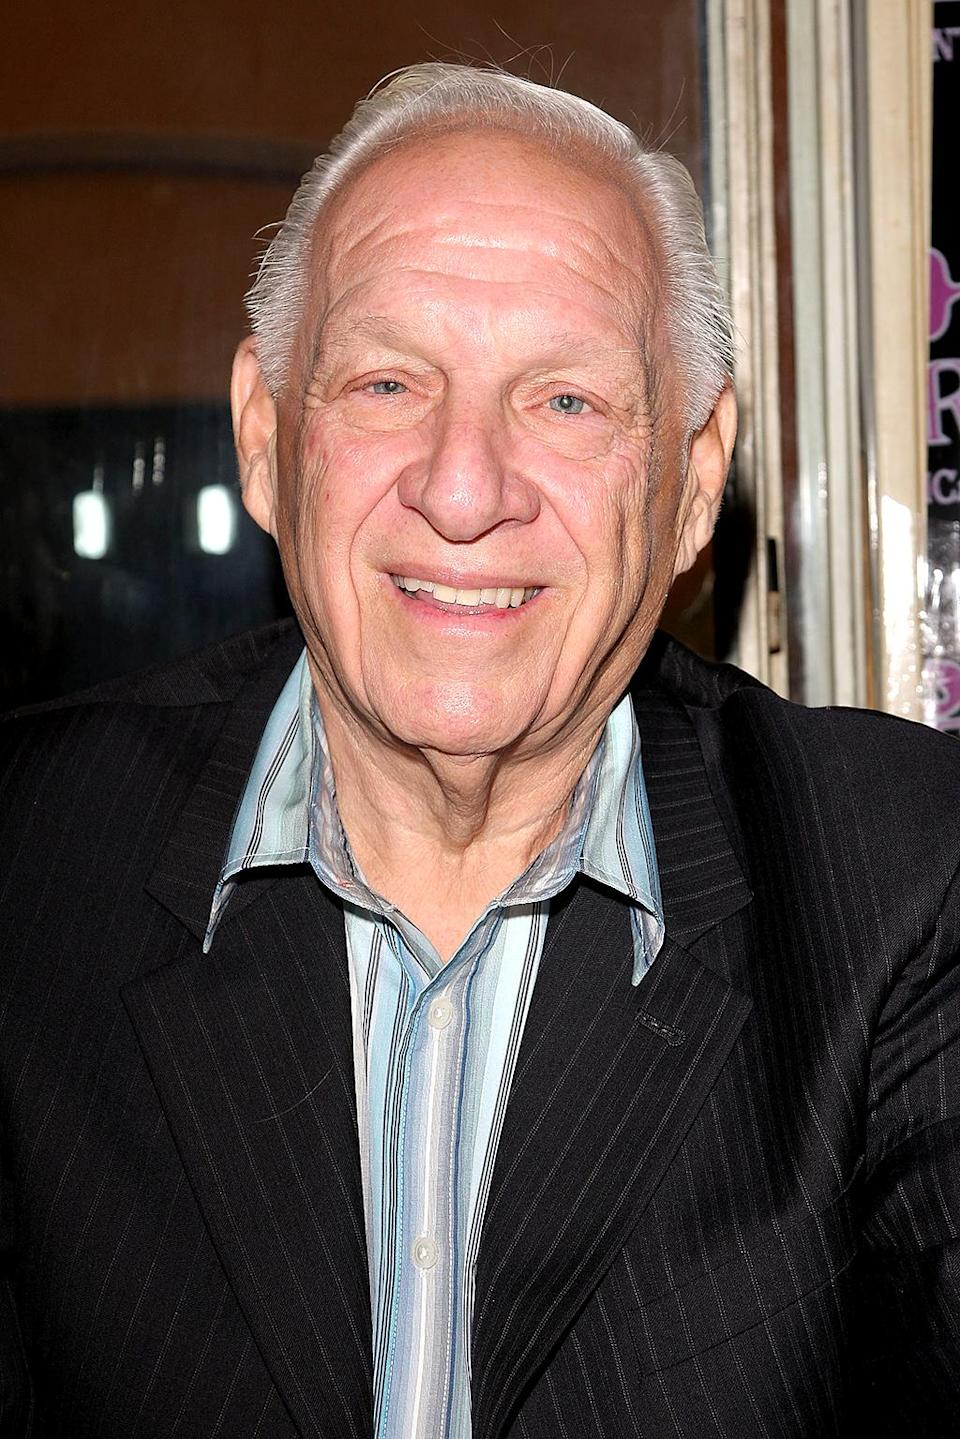 Jerry Heller was a music manager and businessman best known for managing N.W.A and Eazy-E, with whom he co-founded Ruthless Records. Paul Giamatti portrayed him in the biopic 'Straight Outta Compton' last year. Heller passed away Sept. 2 after suffering a heart attack while driving, which resulted in a car accident. He was 75. (Photo: Victor Chavez/WireImage)